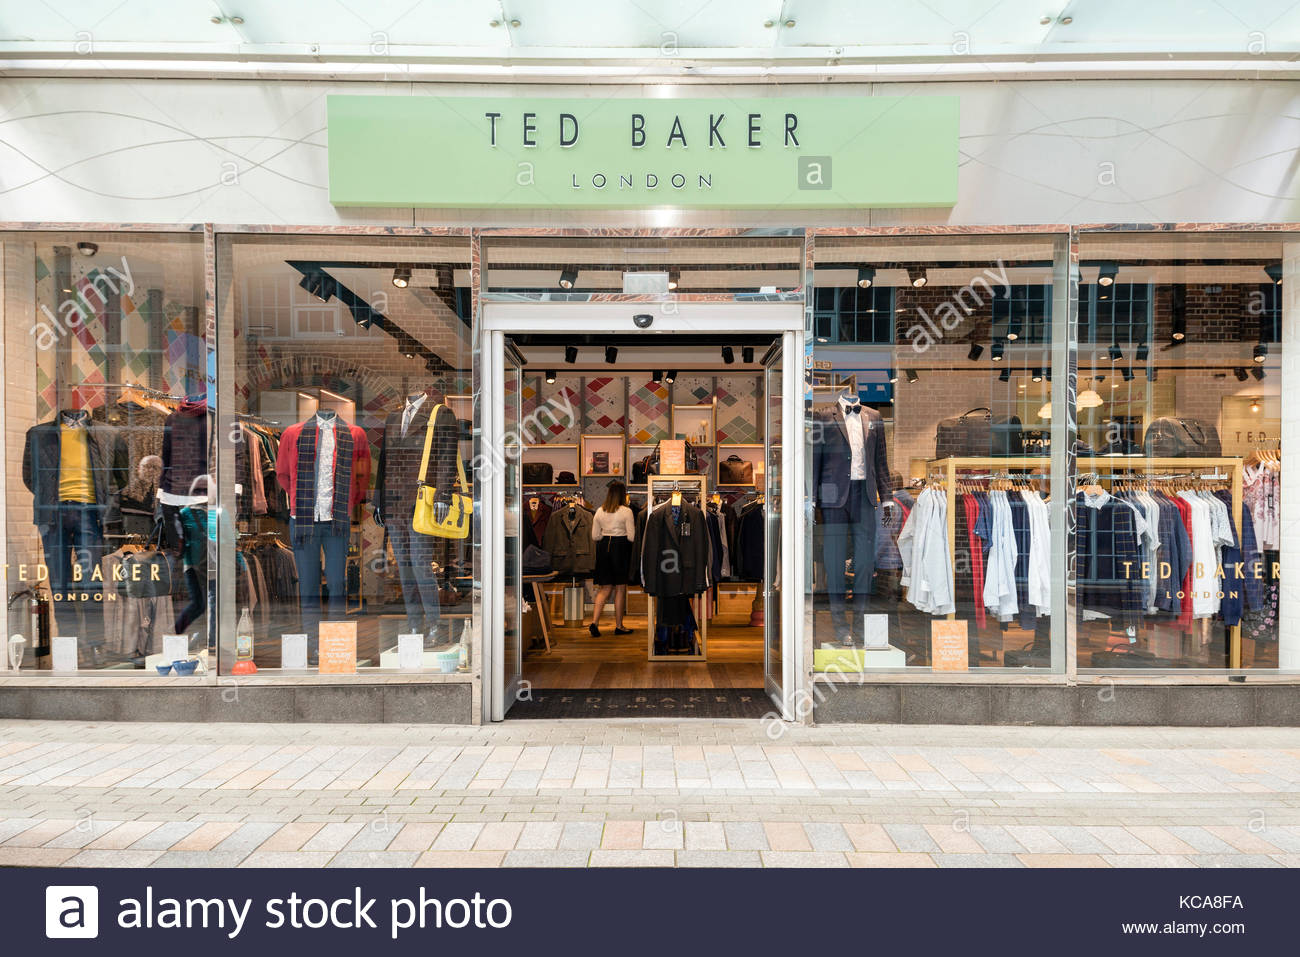 d5afd8b5a Ted Baker store